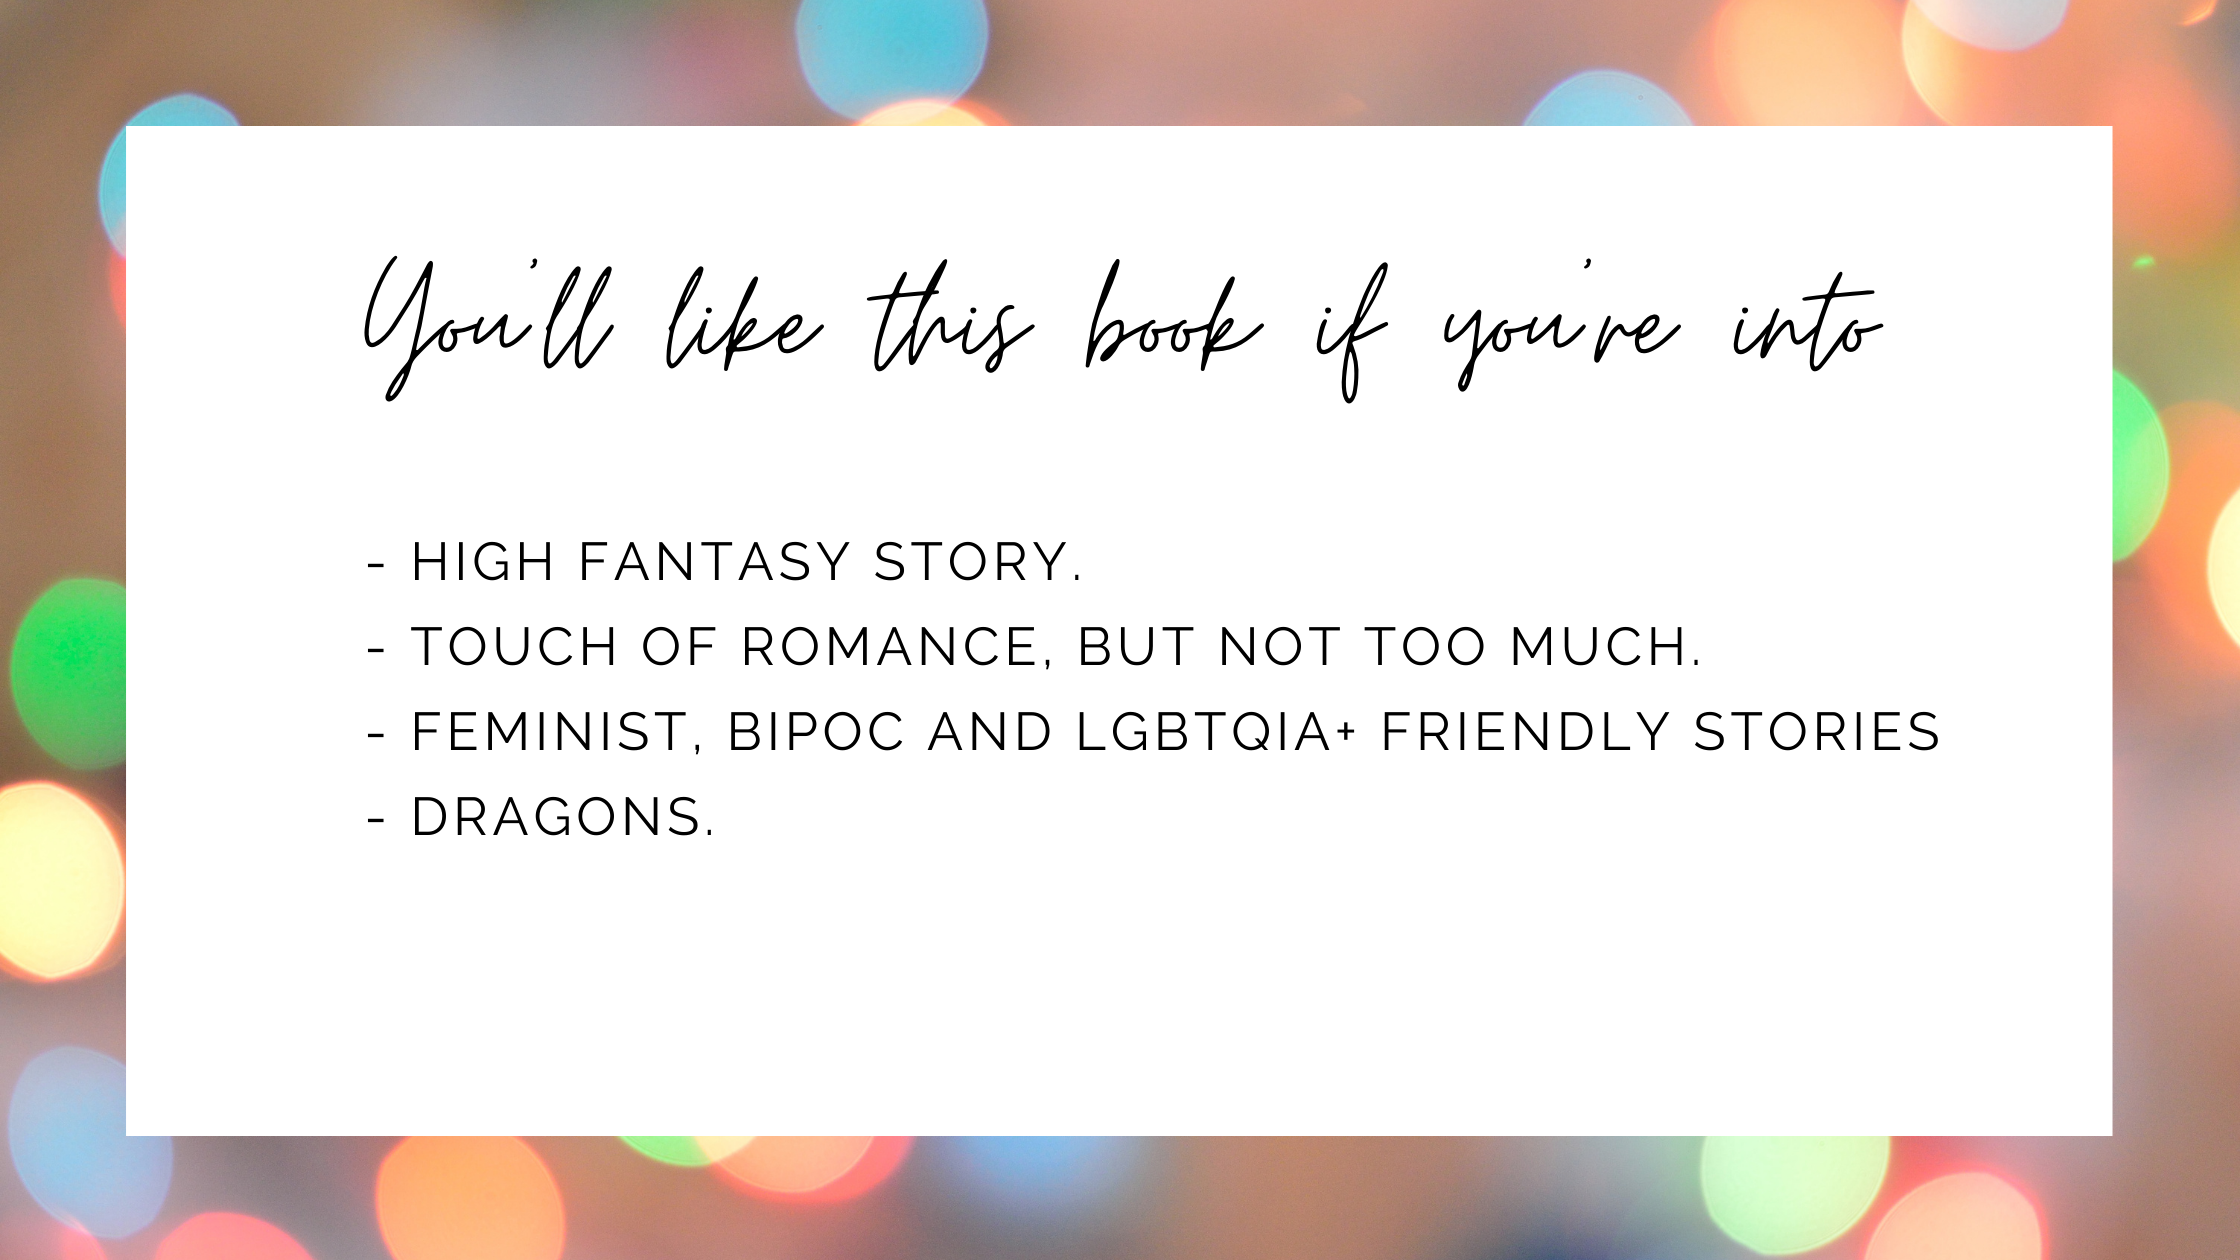 You'll like this book if you're into high fantasy, touch of romance but not too much, feminist, BIPOC and LGBT friendly stories and dragons.